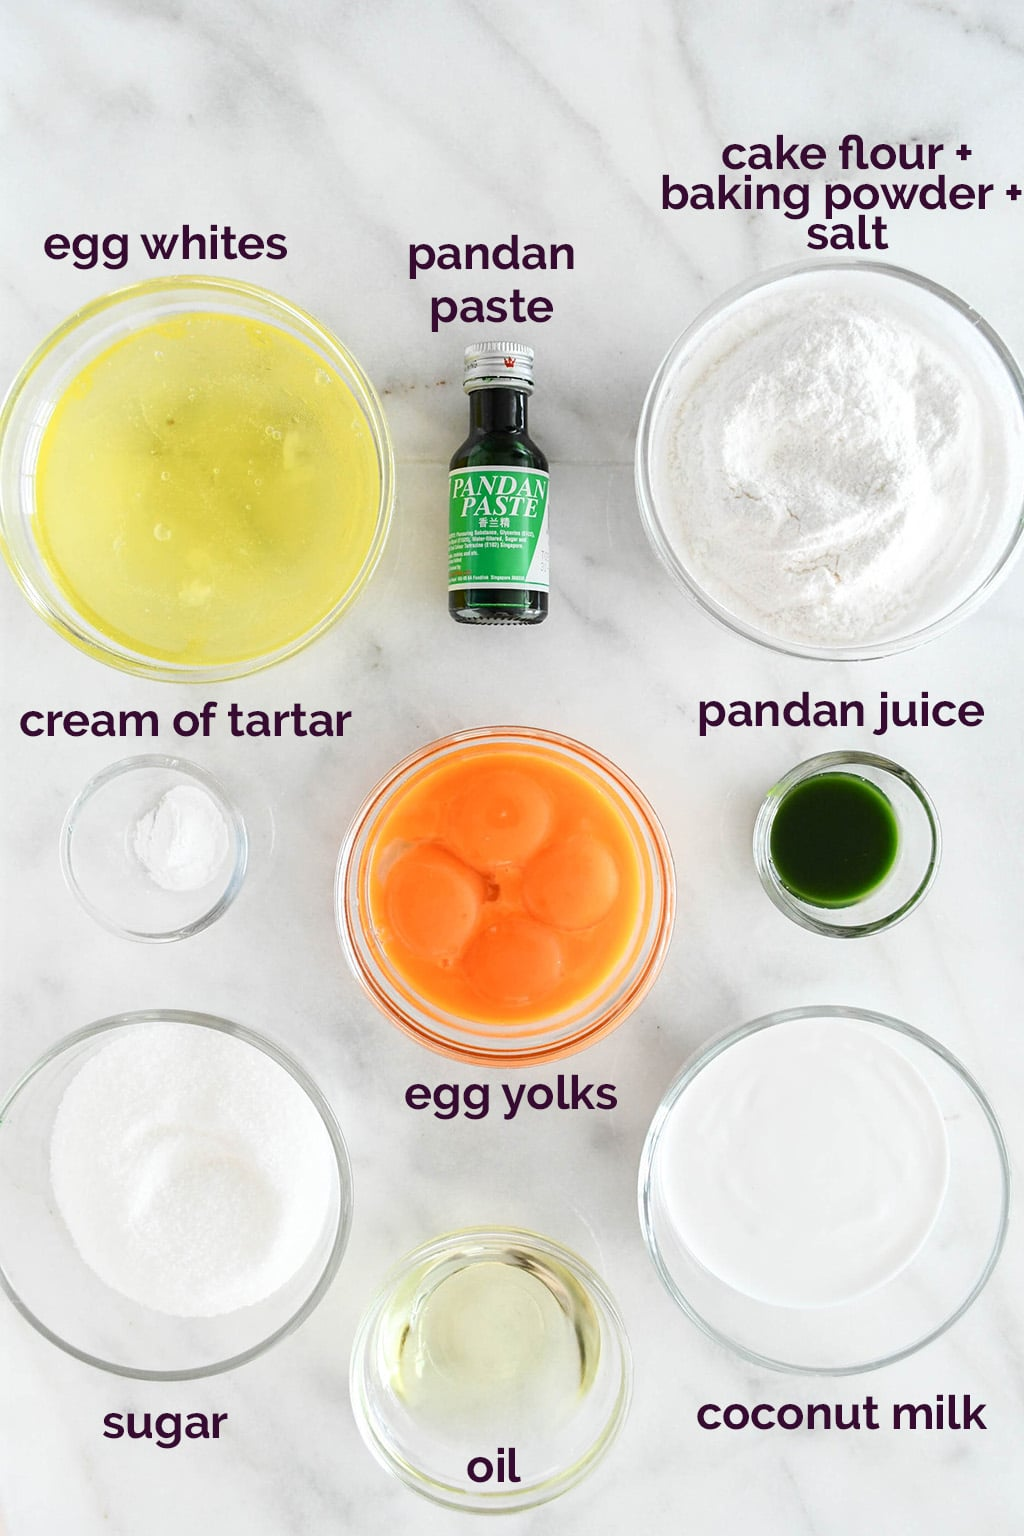 Pandan Chiffon Cake Ingredients